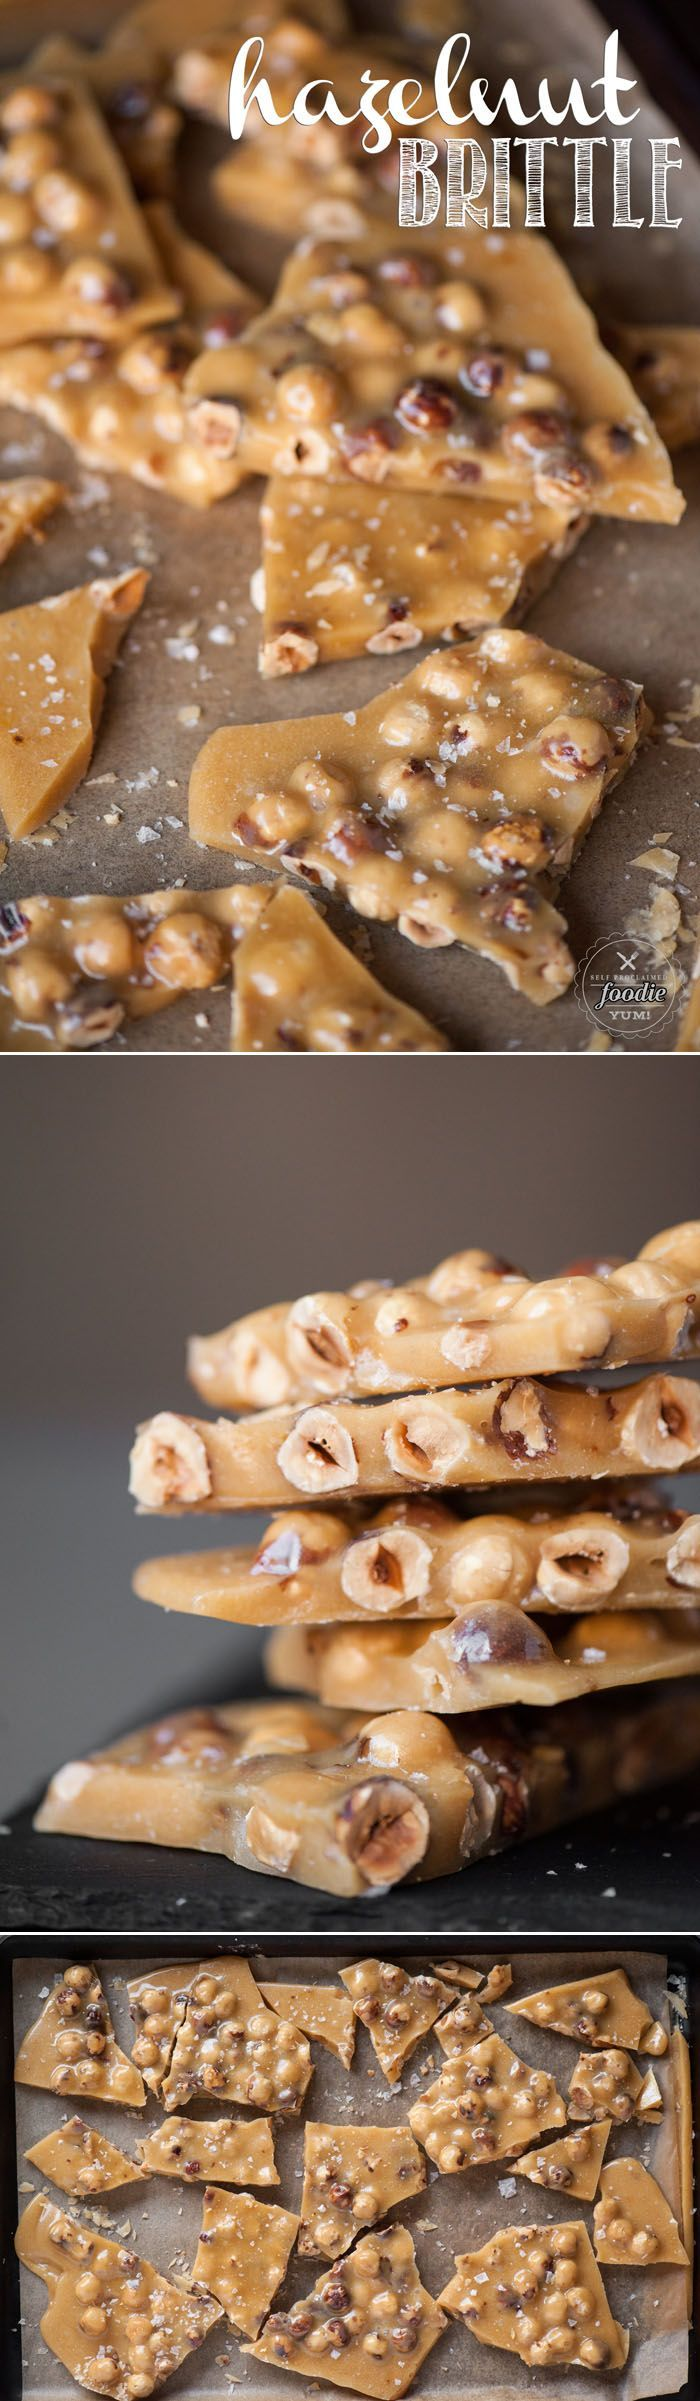 Homemade Hazelnut Brittle is a quick and easy treat that is sure to satisfy any sweet tooth craving, especially during the holidays.